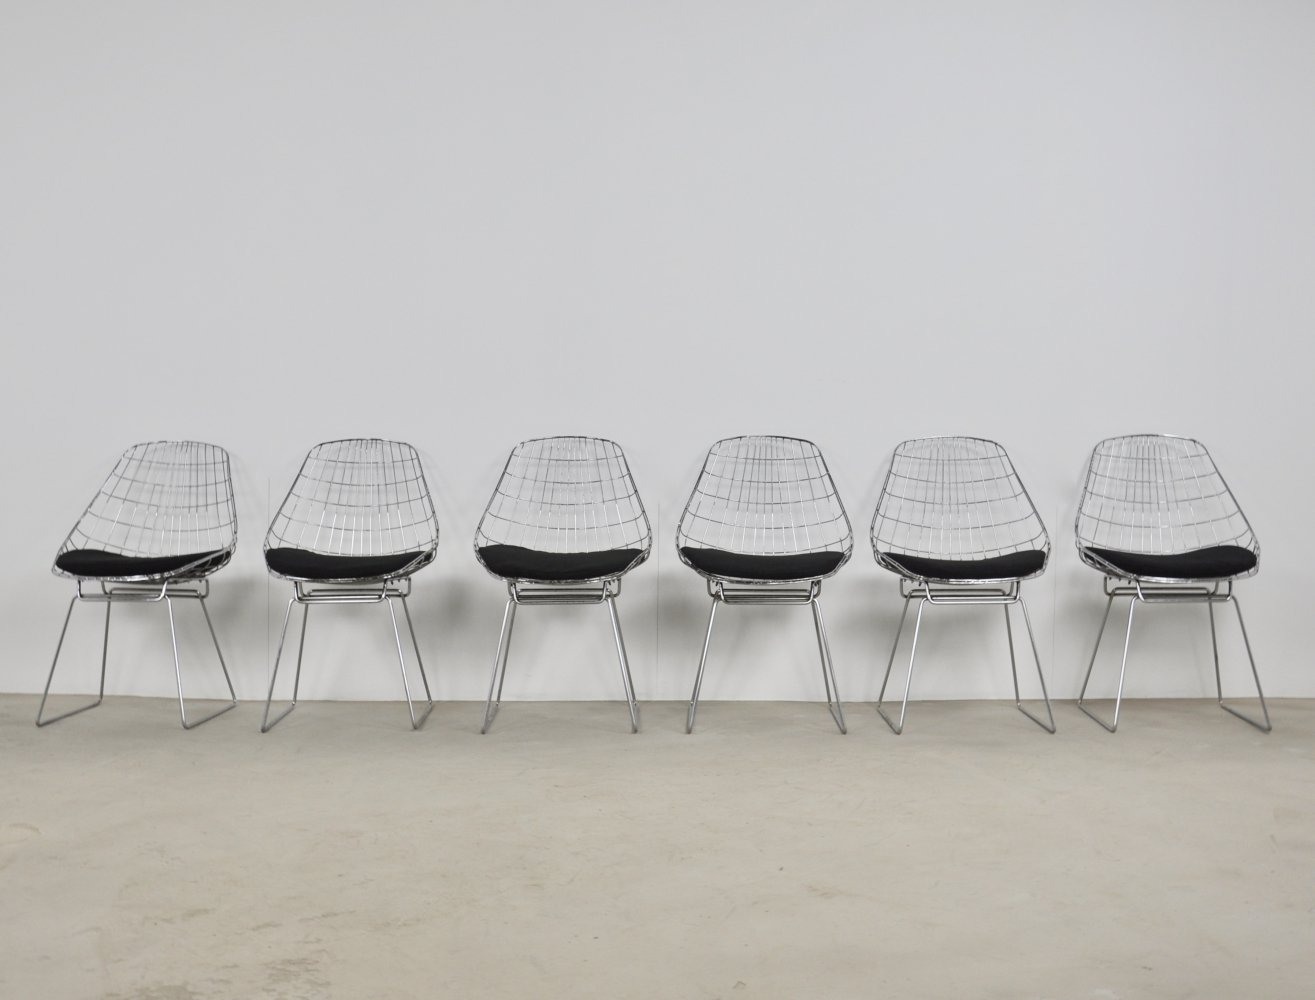 Set of 6 'SM05' wite chairs by Cees Braakman & Adriaan Dekker for Pastoe, 1958